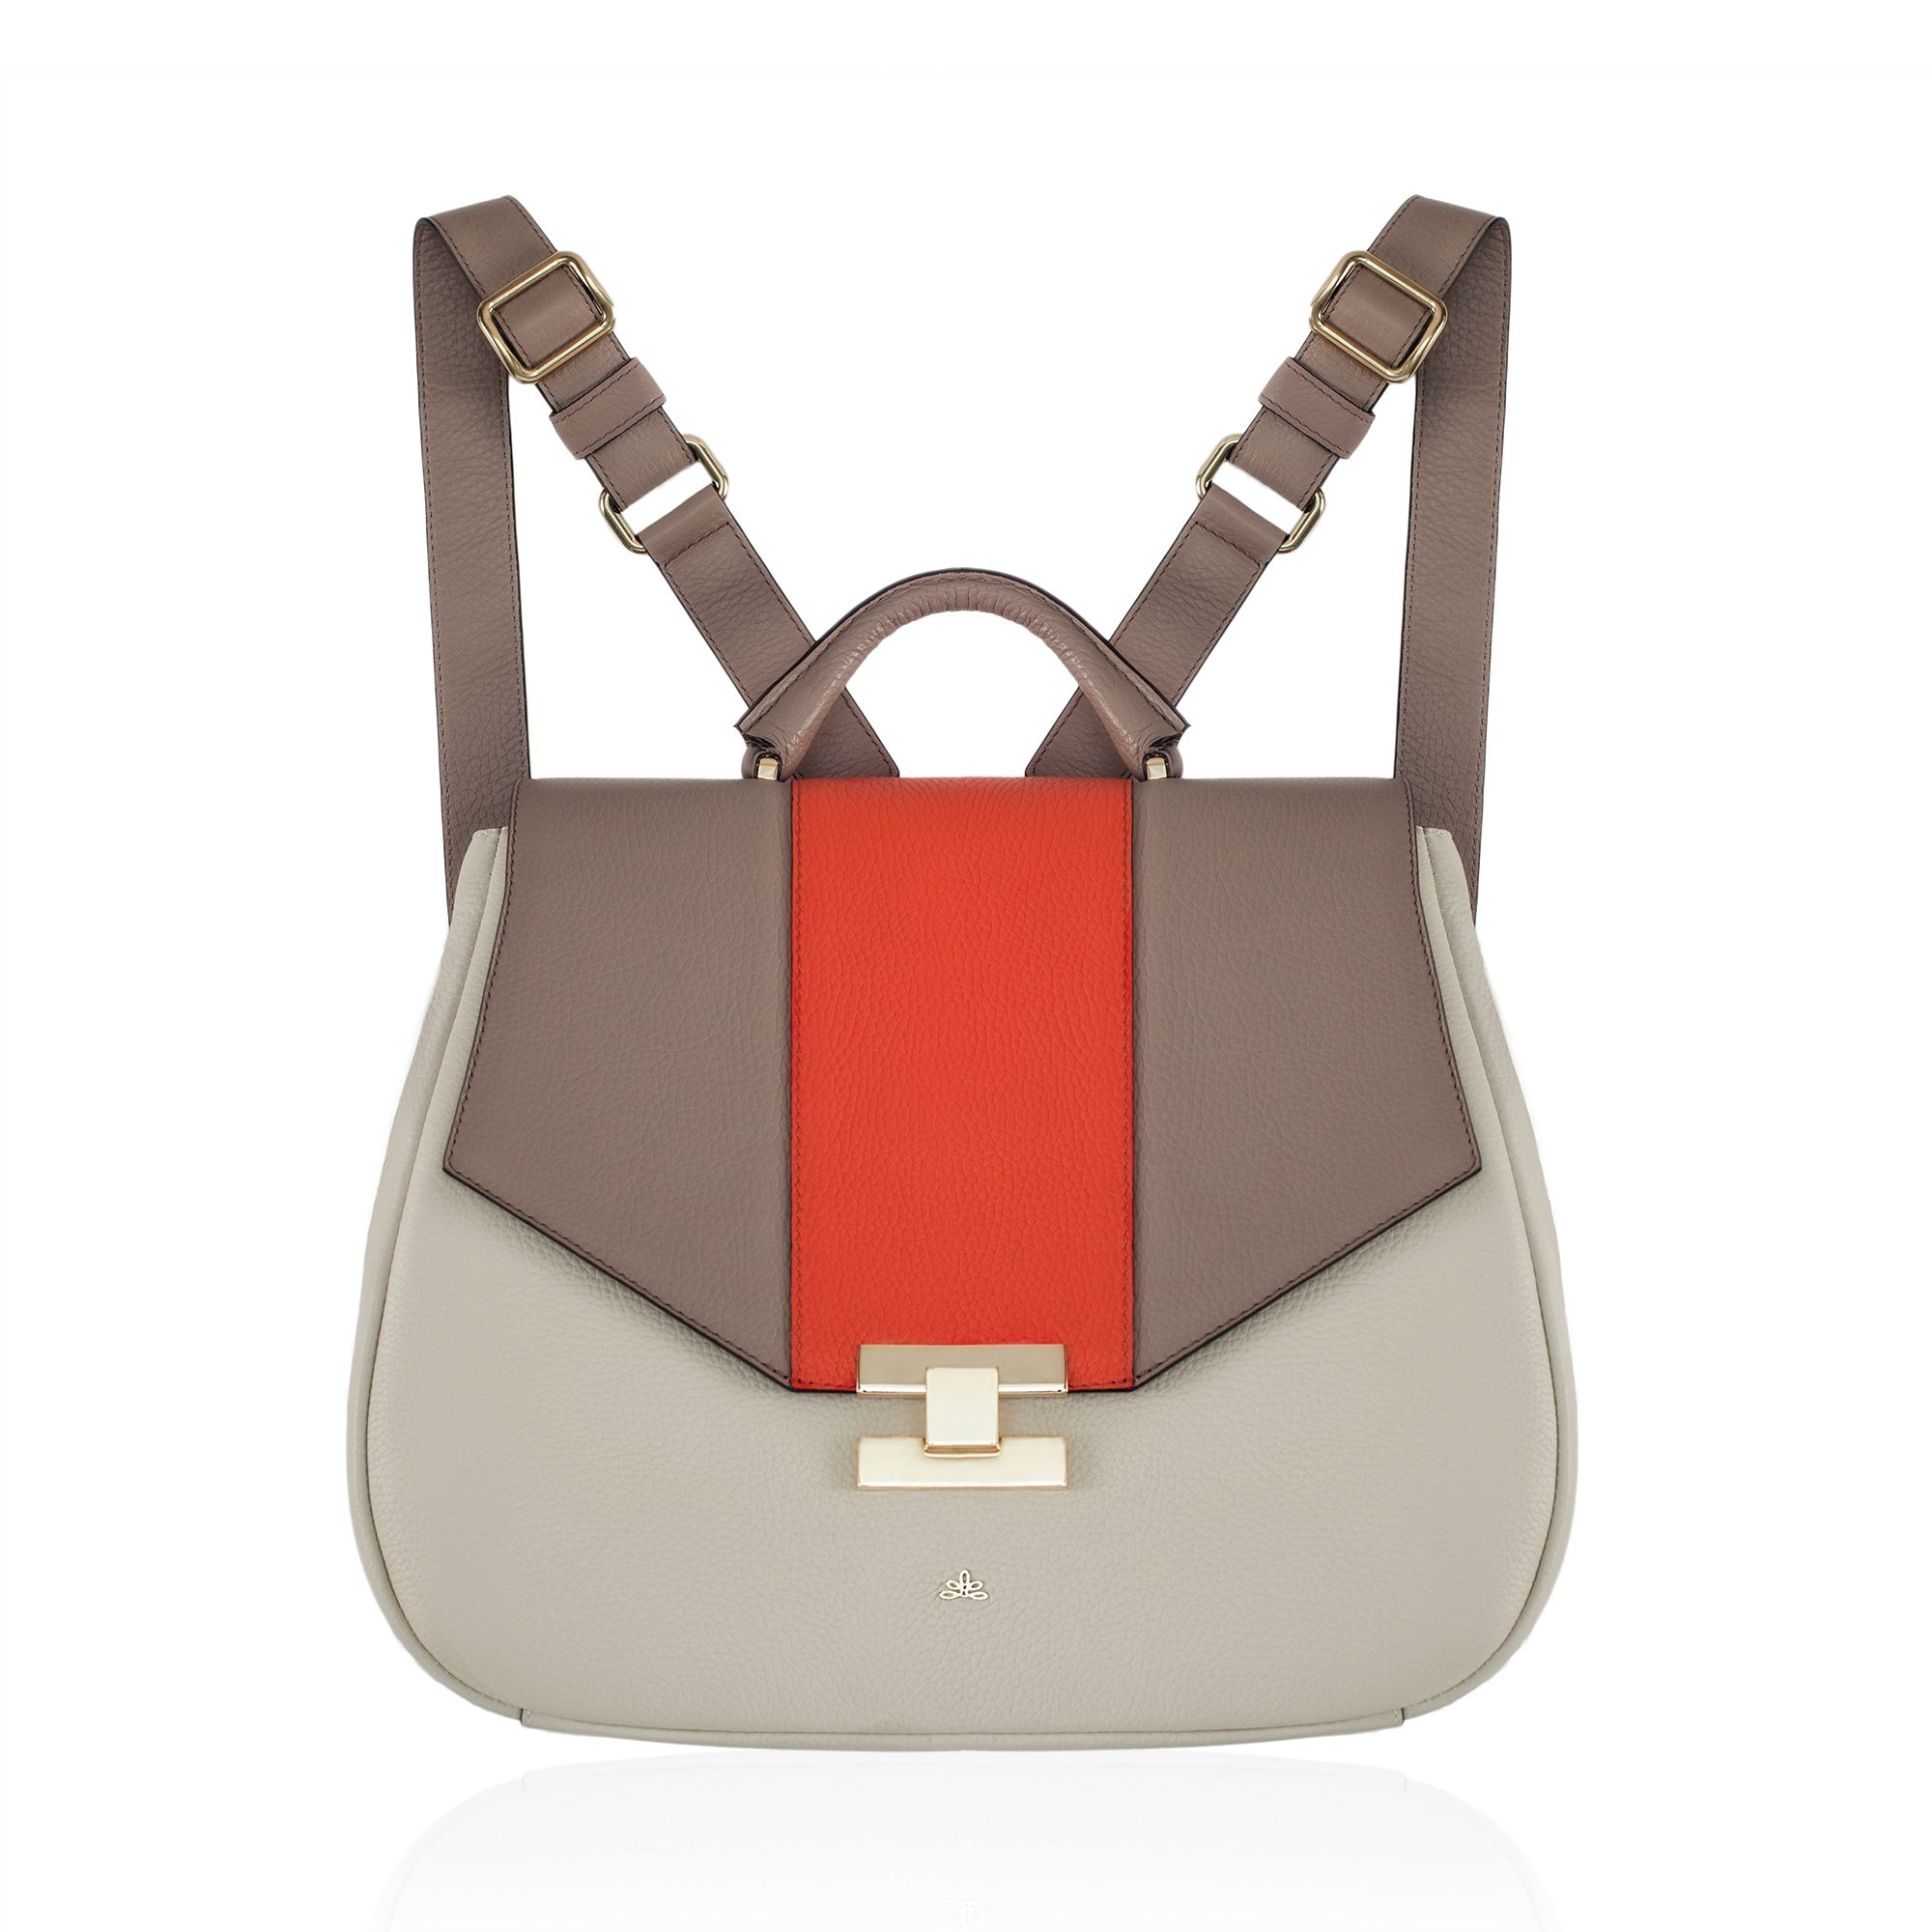 Milli Millu - The Sydney - Taupe & Coral - The ultimate leather ...